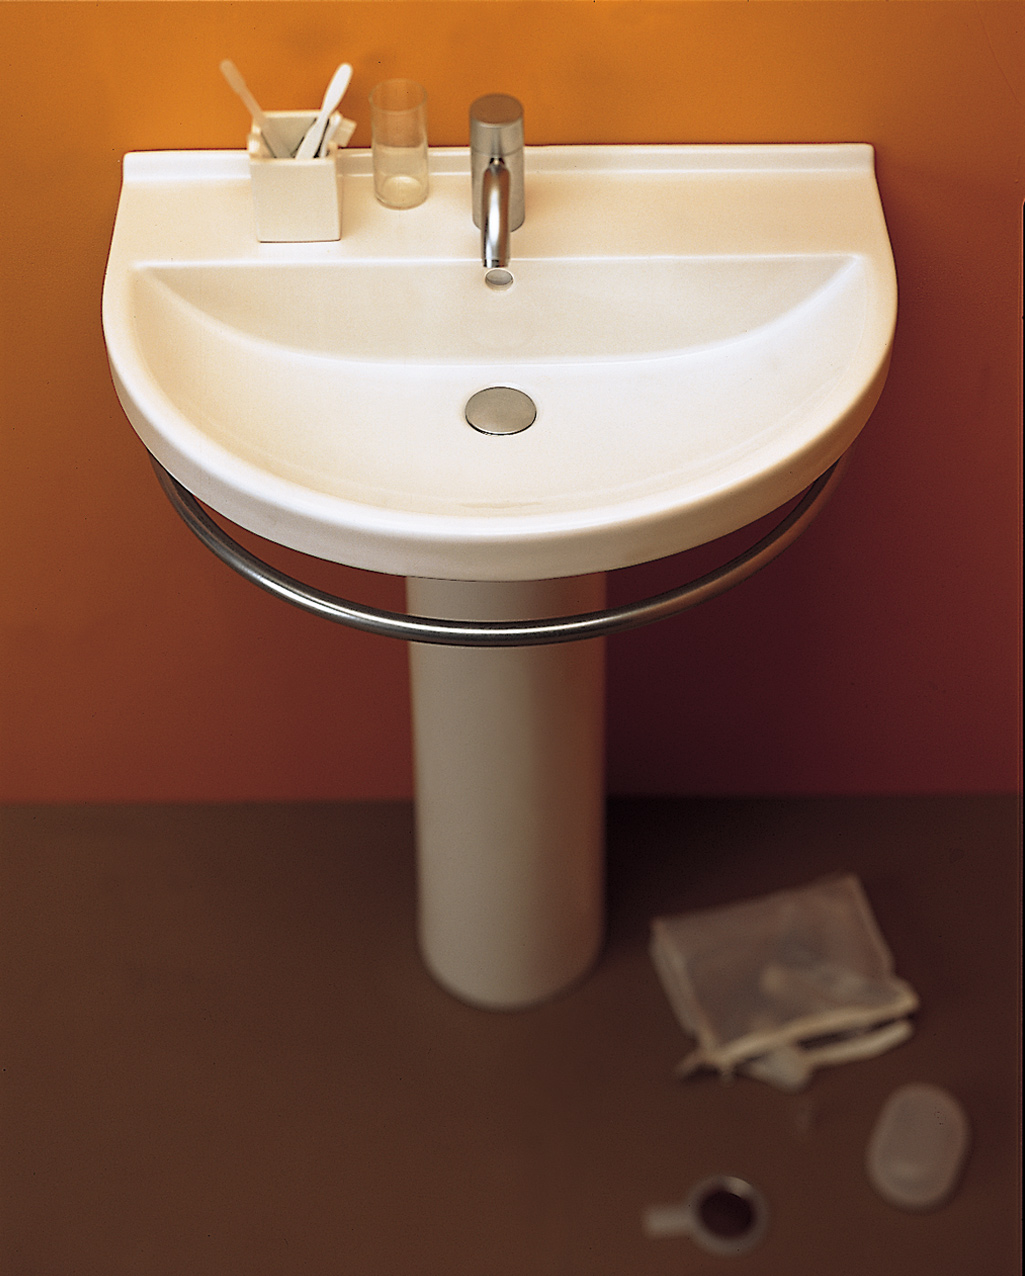 washbasin design photo